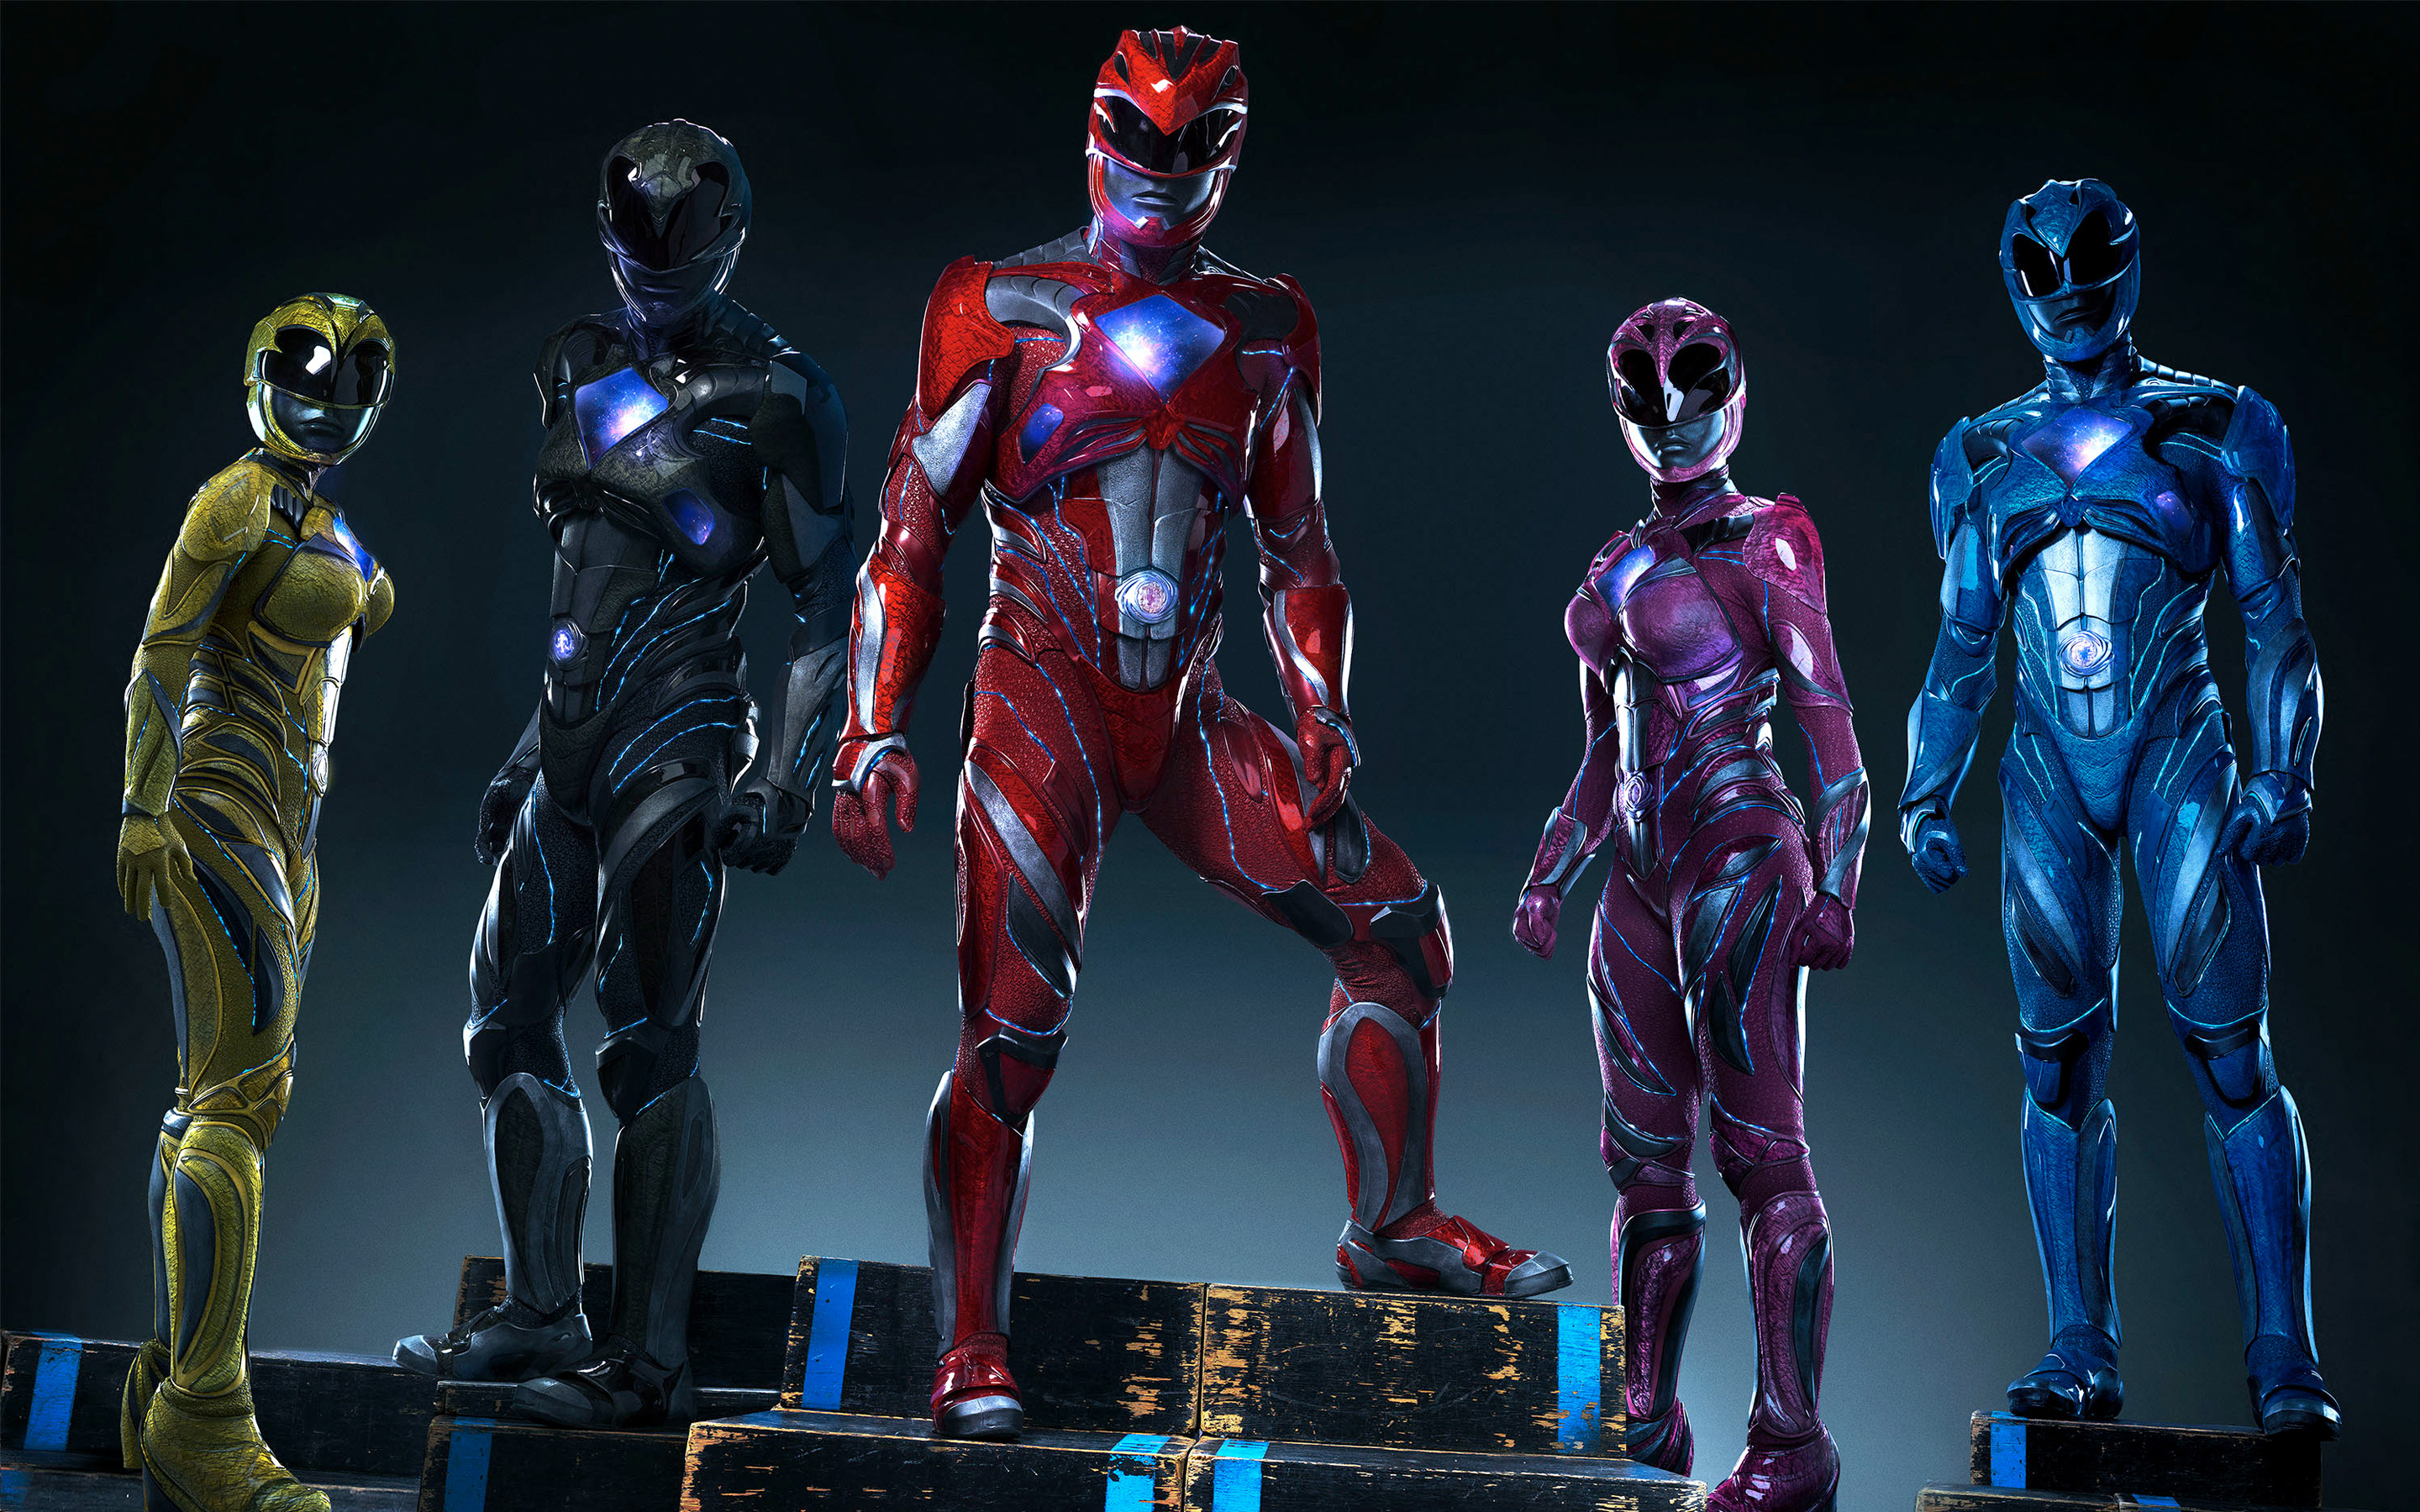 Mighty Morphin Power Rangers 2017 wallpapers 2880x1800